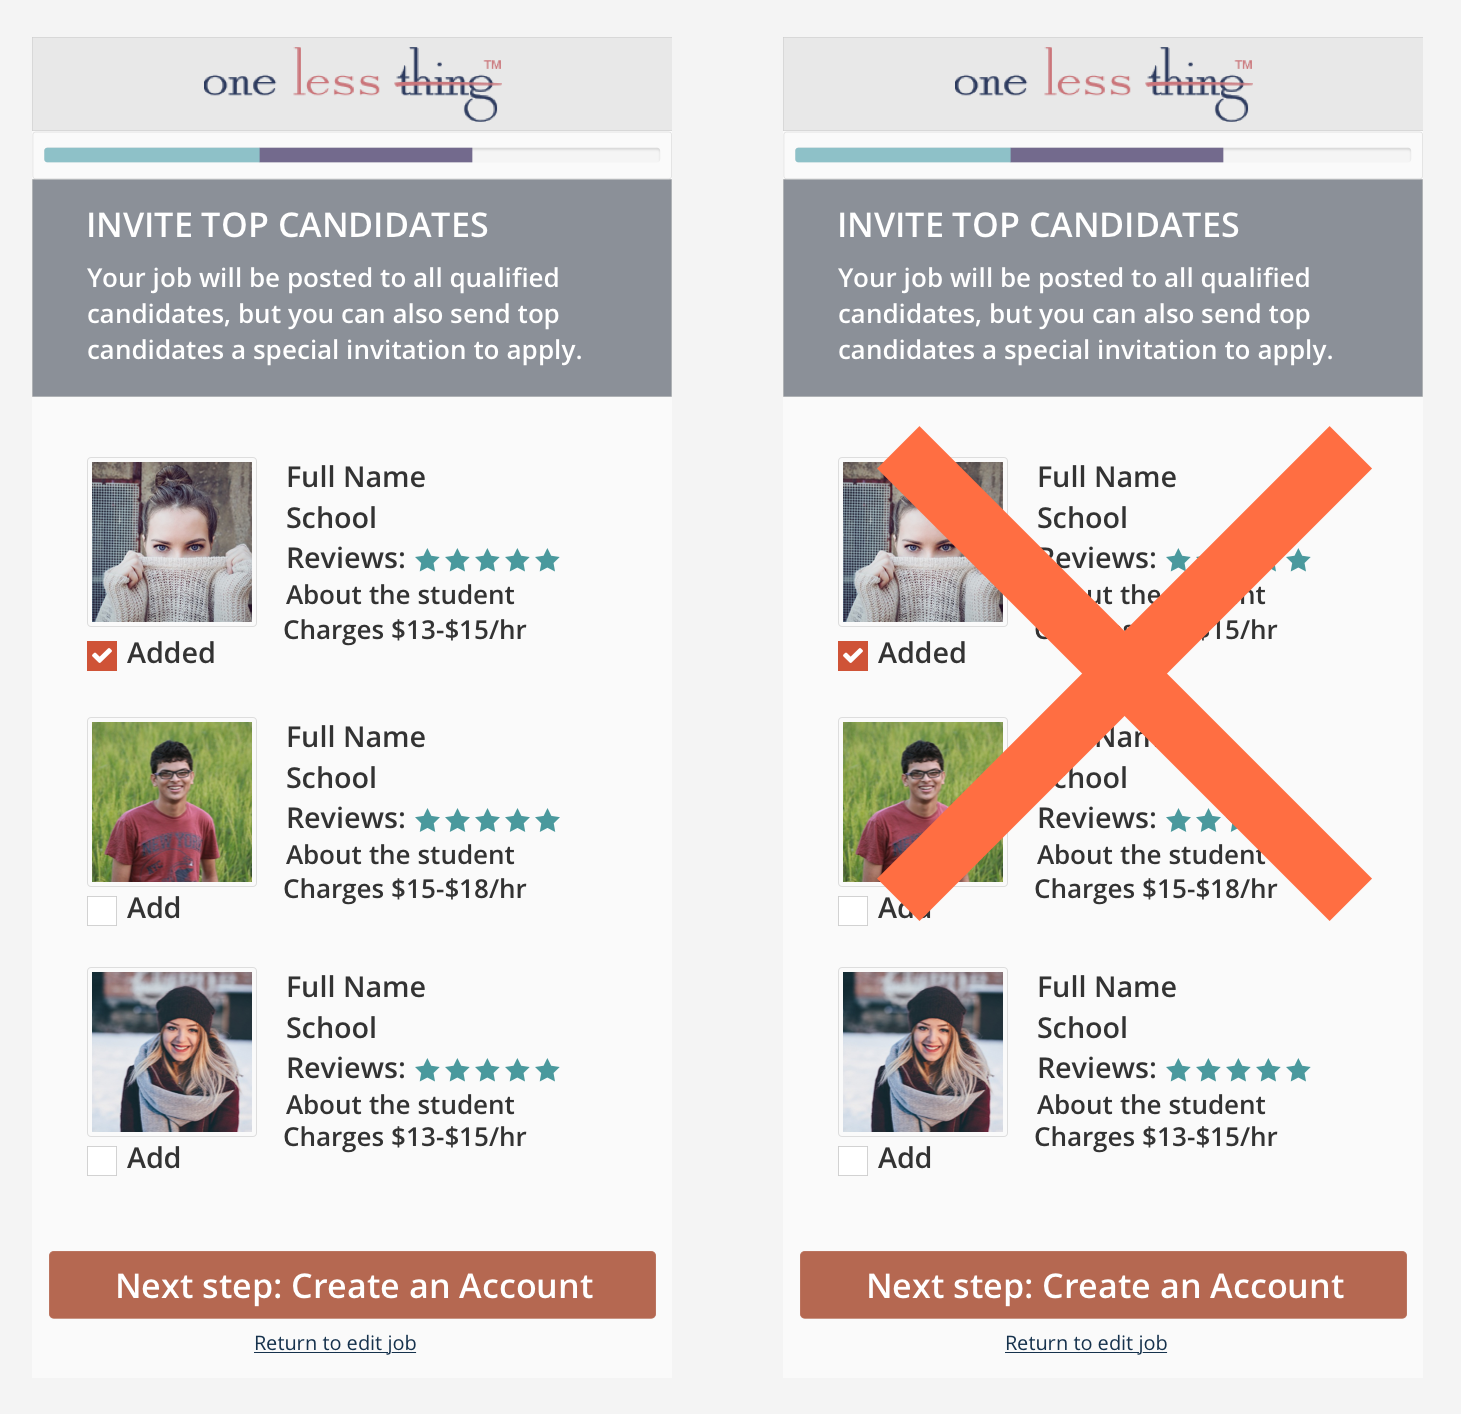 The users found valuable viewing available candidates before posting a job.